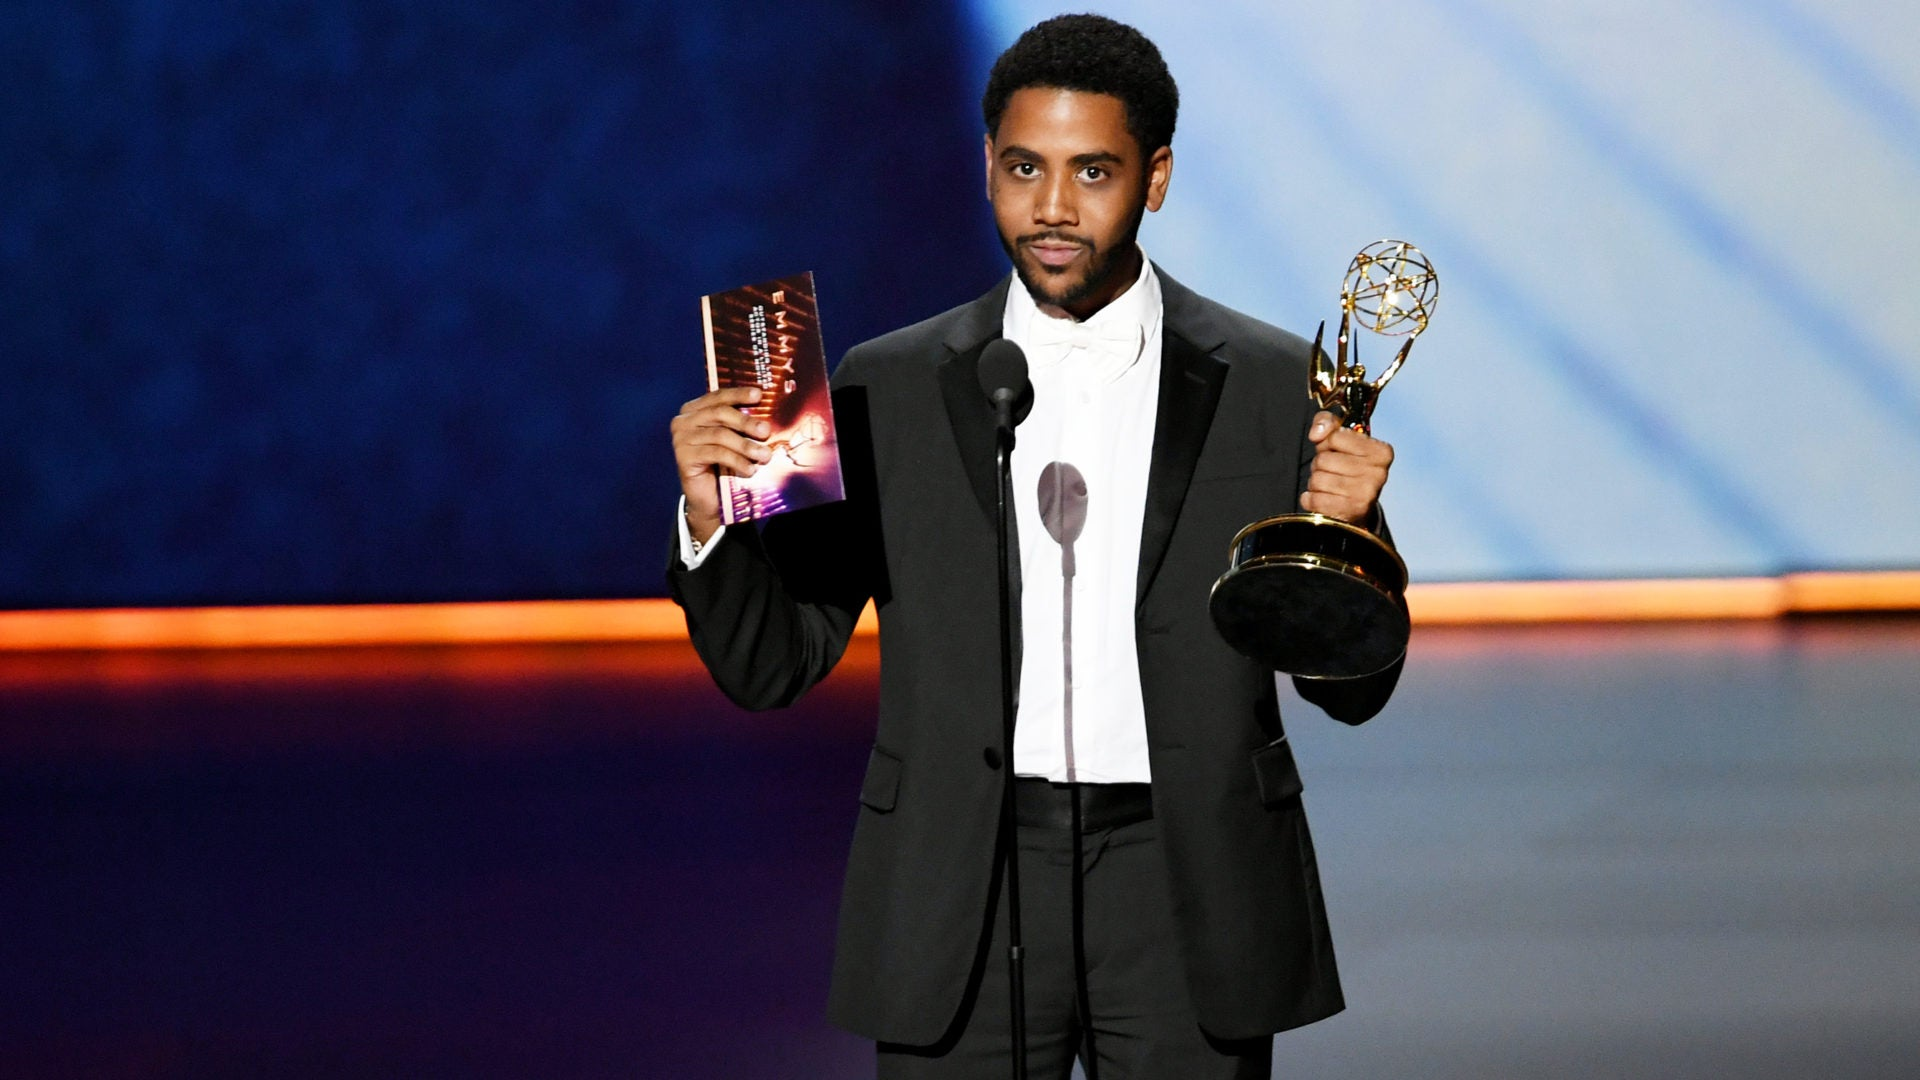 Exclusive: Behind 'When They See Us' Star Jharrel Jerome's Emmy-Winning Look